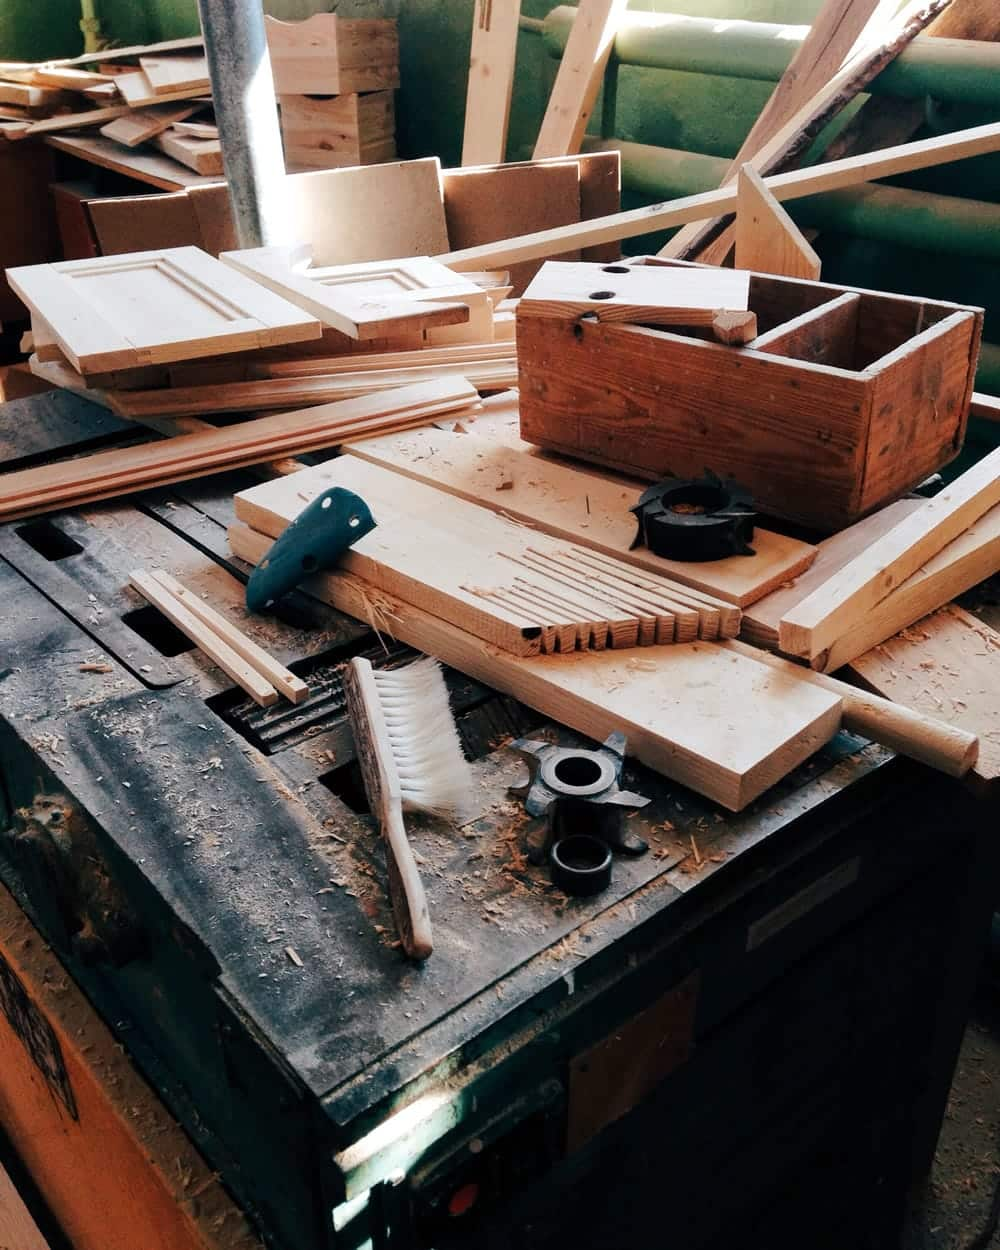 A woodworker tries to figure out a solution to a problem.